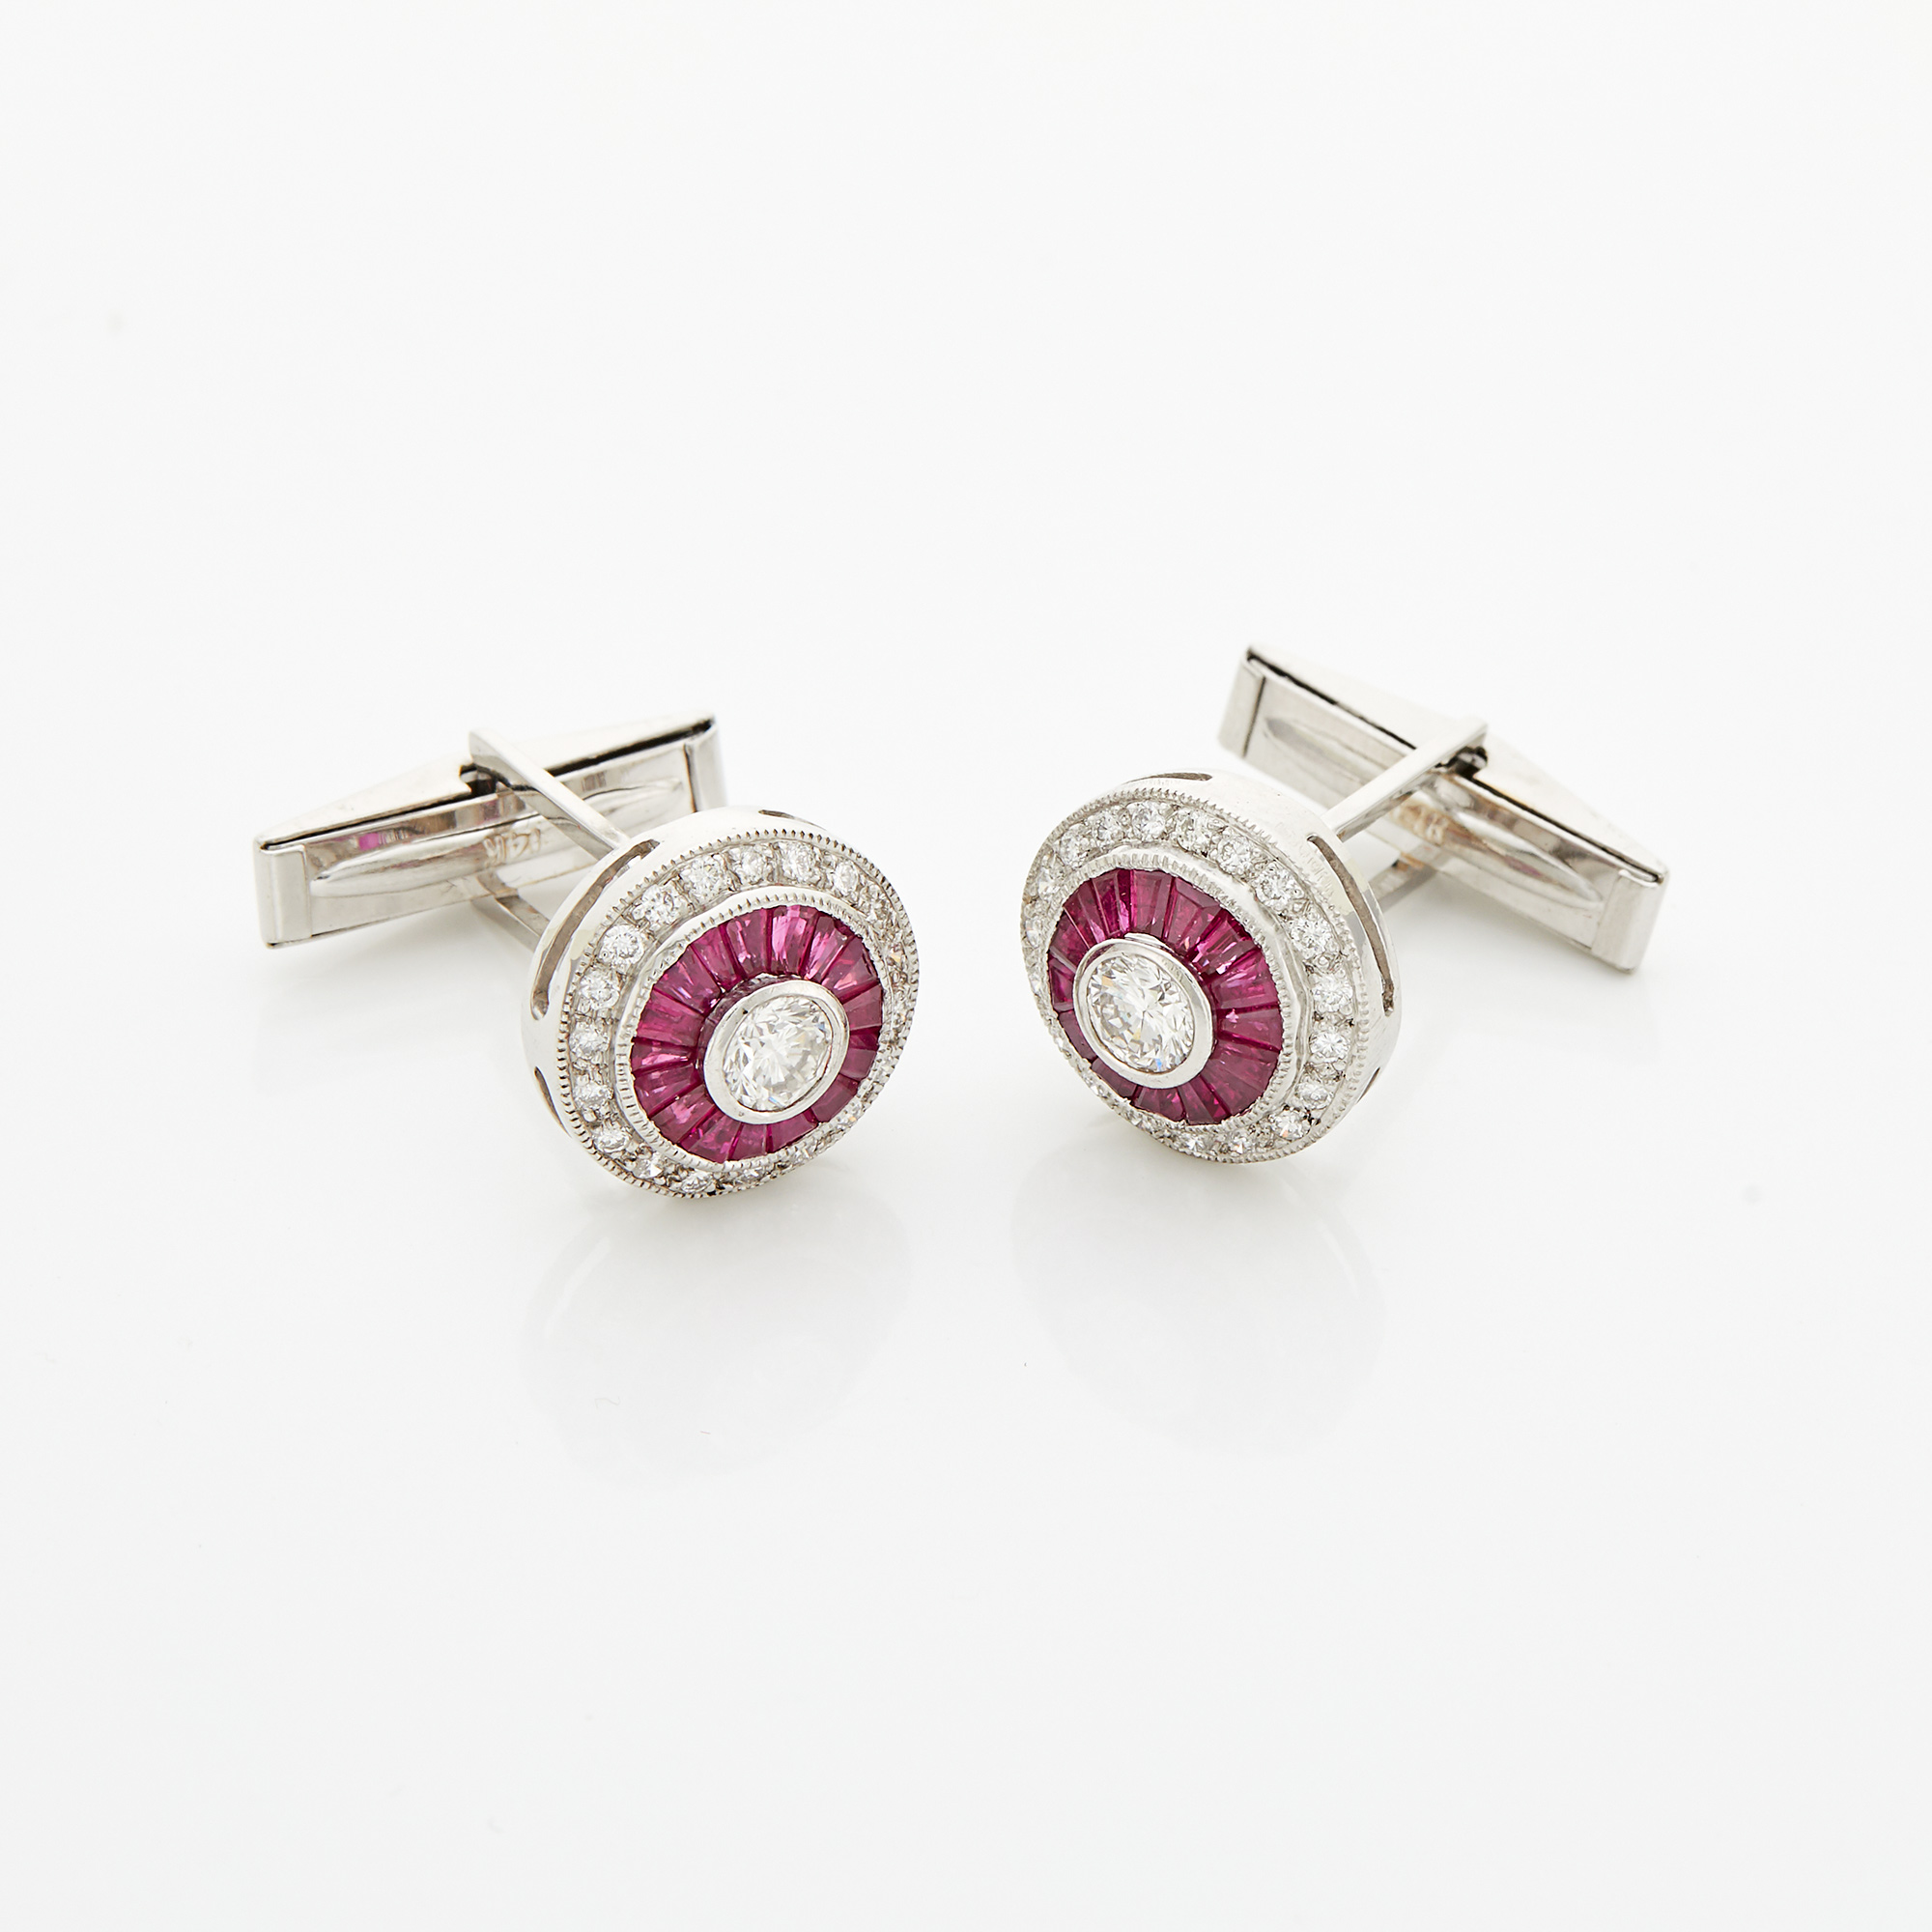 Lot image - Pair of White Gold, Diamond and Synthetic Ruby Cufflinks